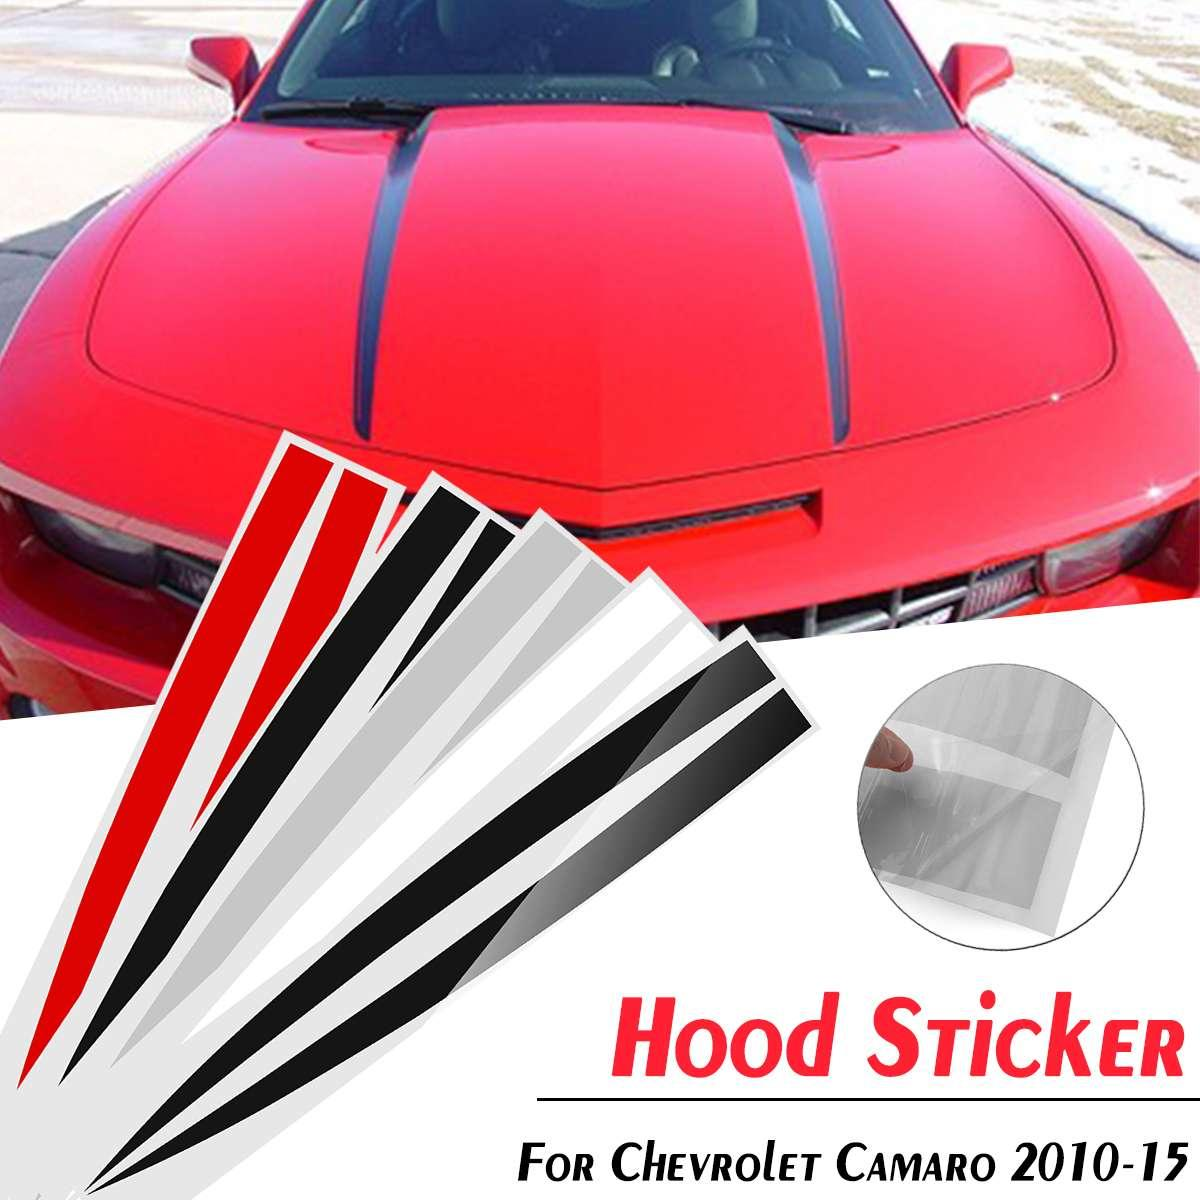 2019 bonnet hood stripe vent panel sticker decals for chevrolet camaro 2010 2015 glossy black matte black gray sliver white red from haoxincar